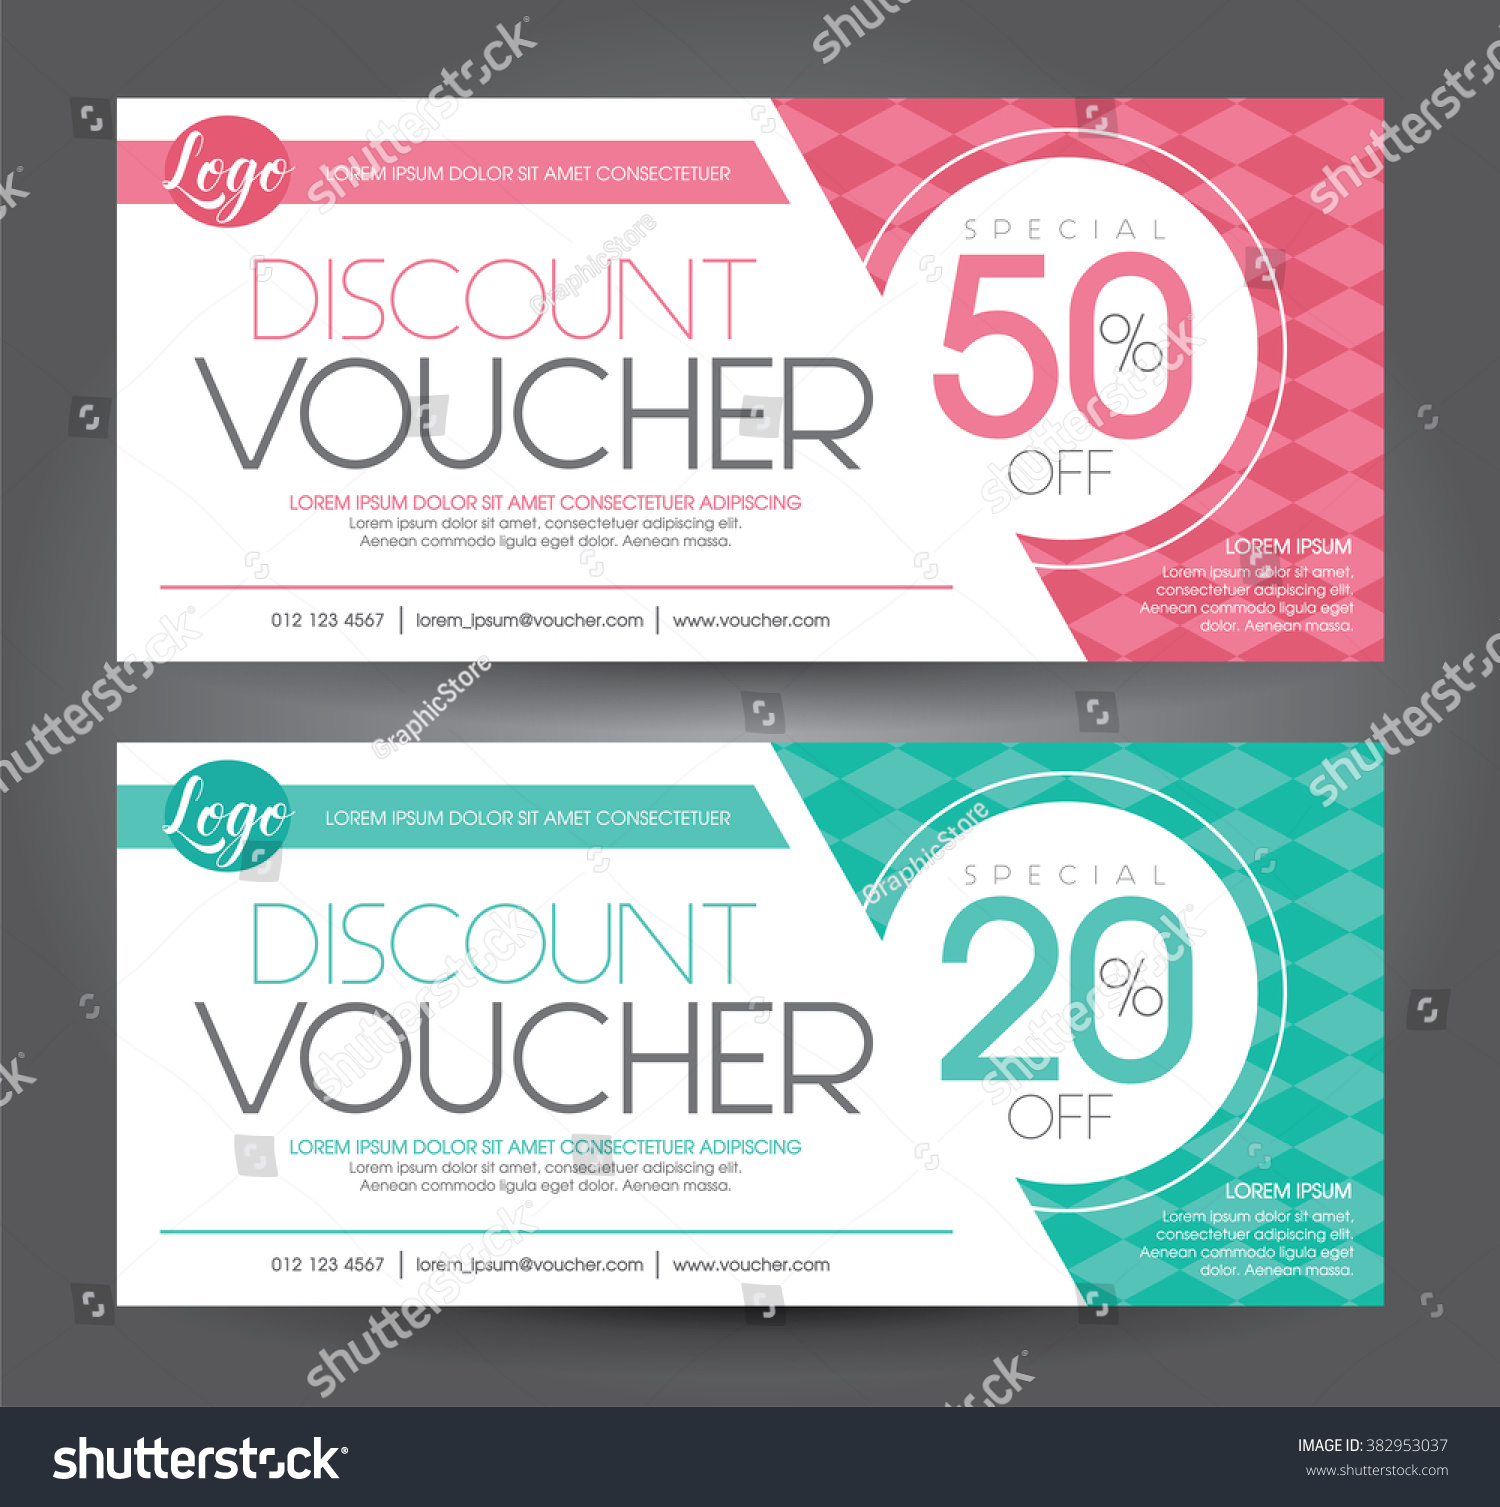 vector illustration discount voucher template clean stock vector discount voucher template clean and modern pattern